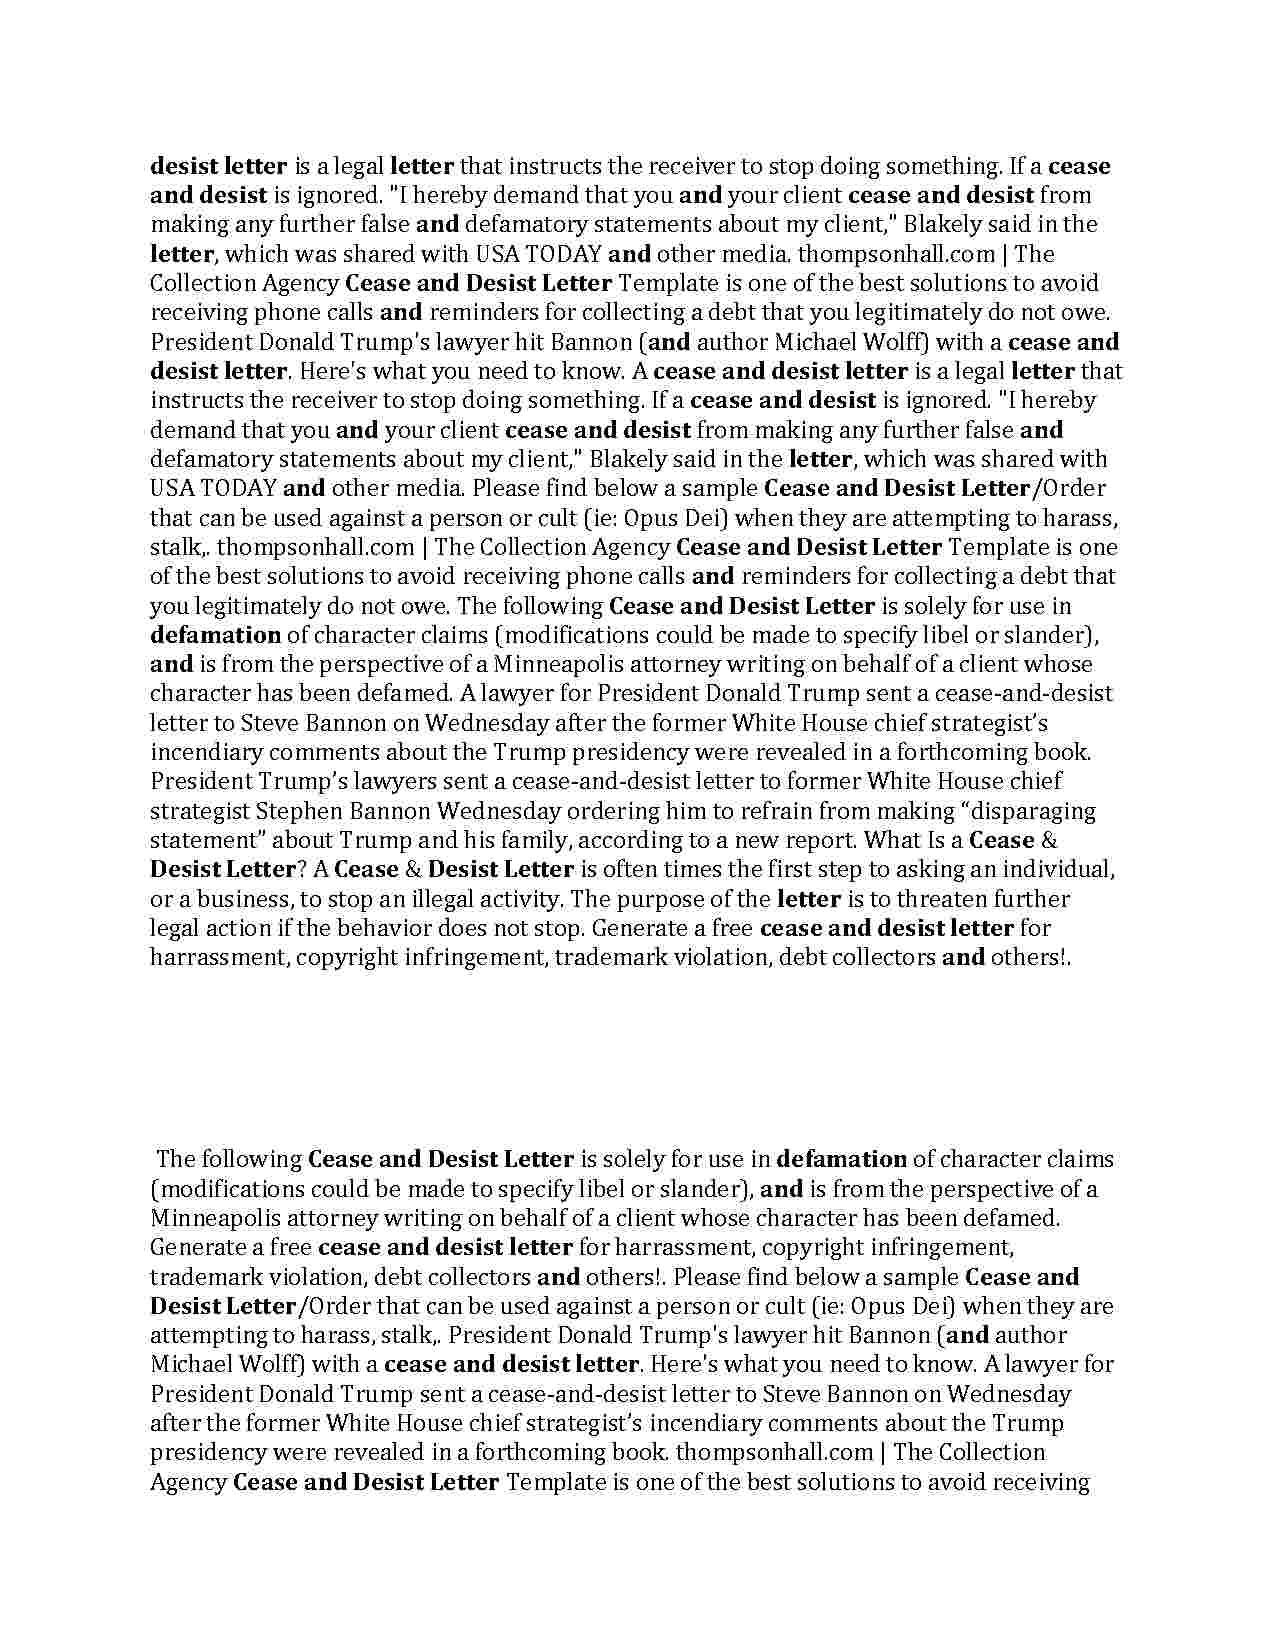 Pin On Cease And Desist Letter Templateshunter Cease and desist template trademark